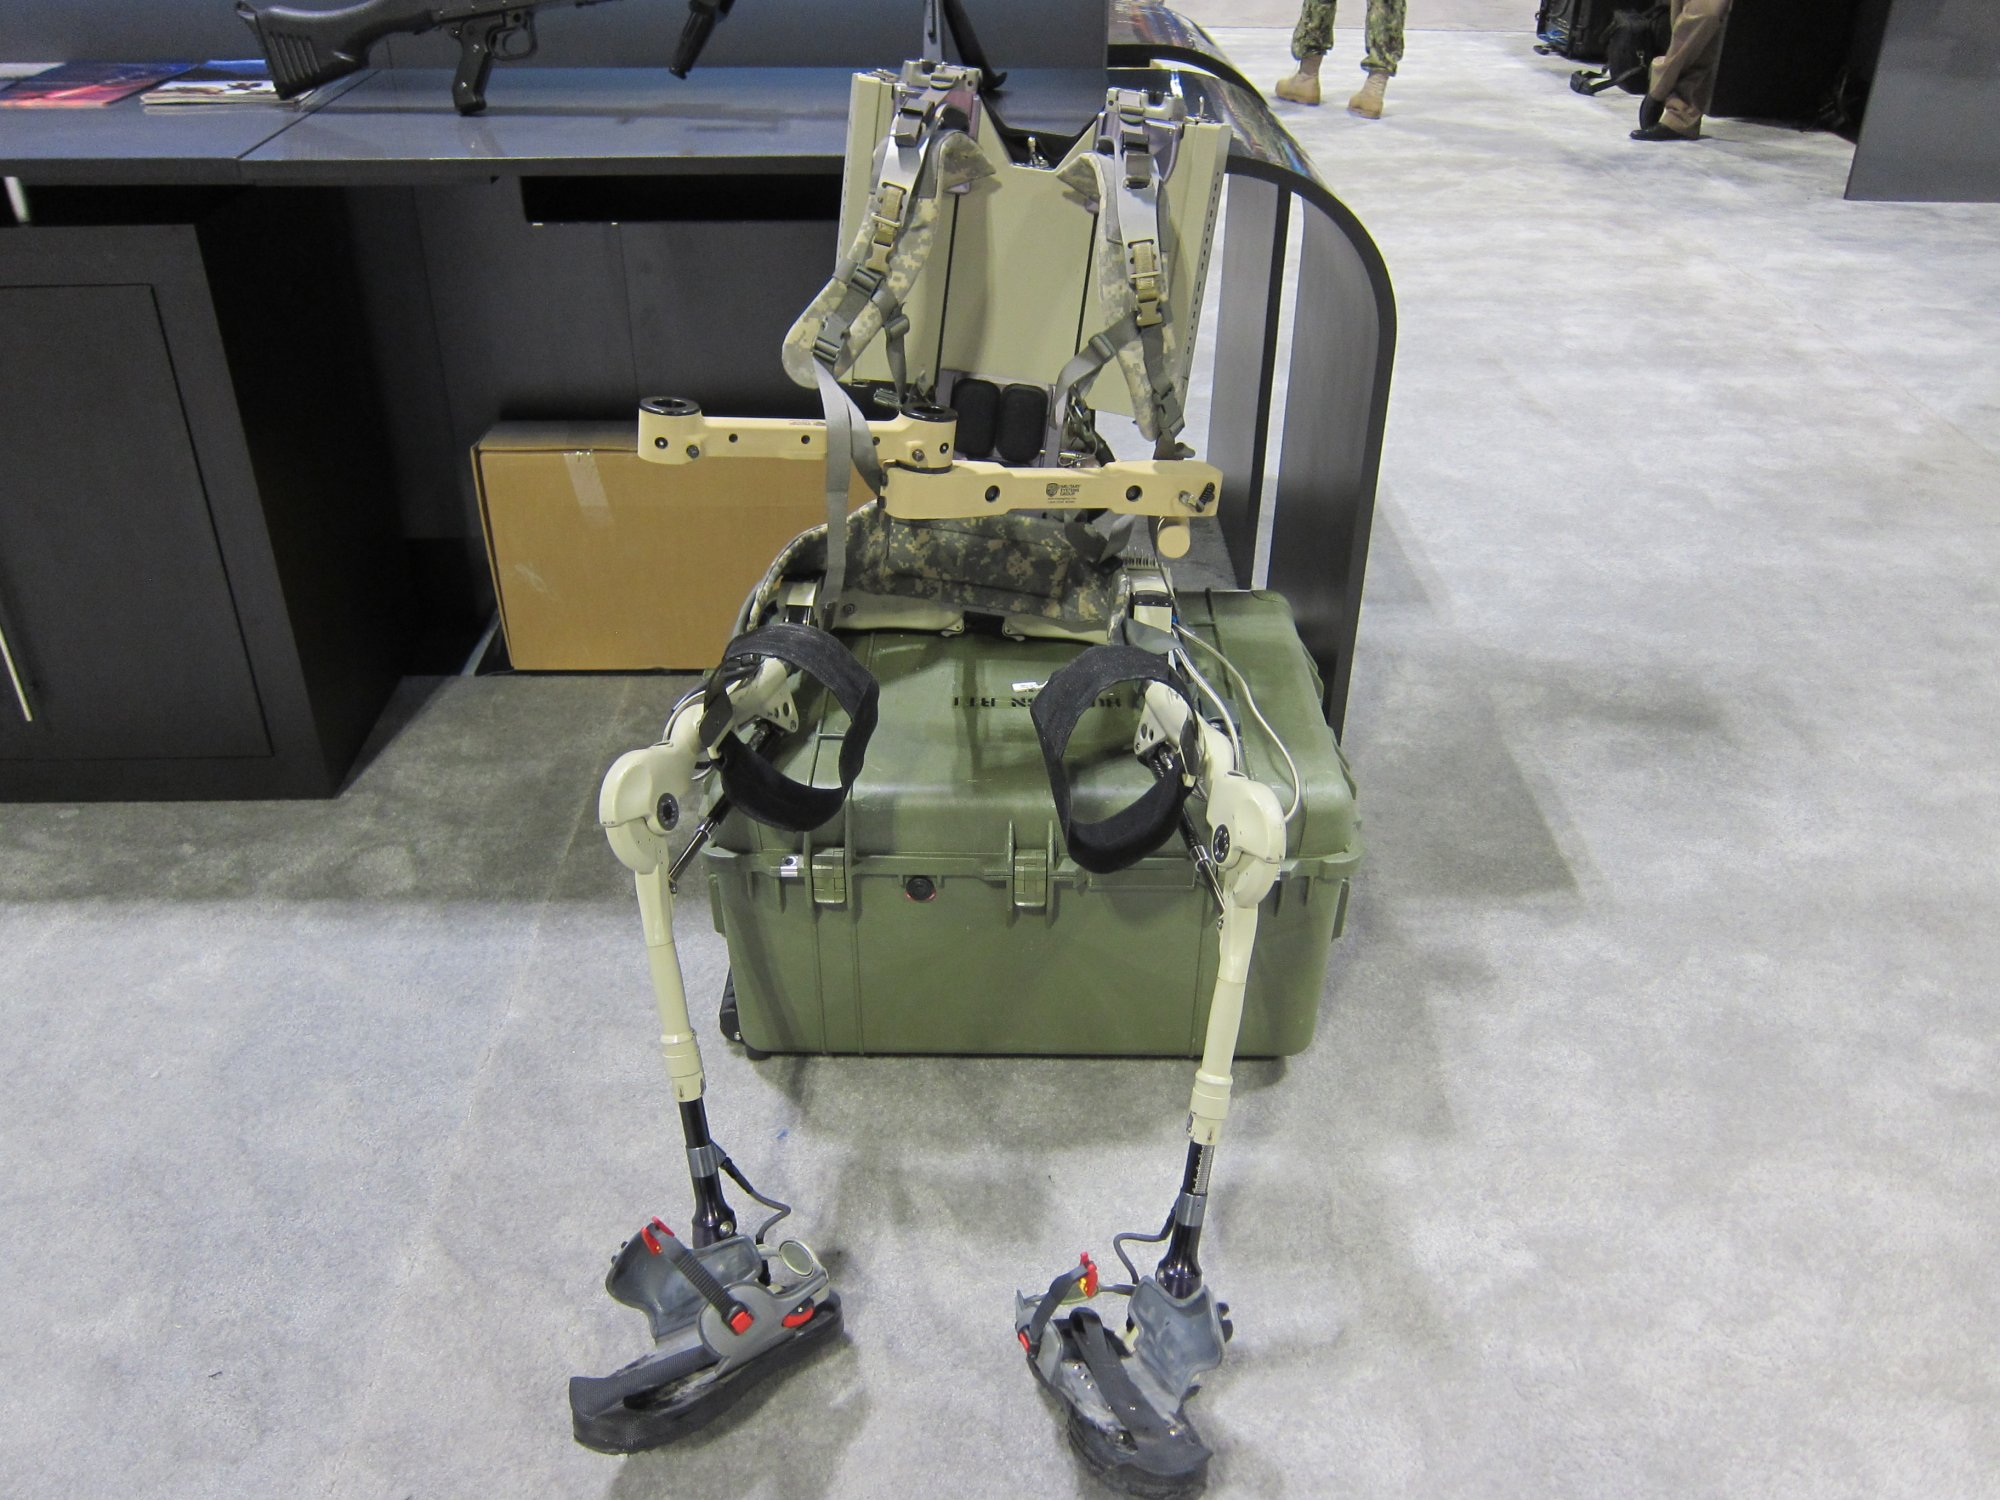 Berkeley Bionics Lockheed Martin HULC Human Universal Load Carrier Anthropomorphic Exoskeleton for Military Combat SOFIC 2012 DefenseReview.com DR 2 Lockheed Martin HULC (Human Universal Load Carrier) Anthropomorphic Robotic Exoskeleton for Future Military Special Operations Forces (SOF) Warfare at SOFIC 2012 (Video!)